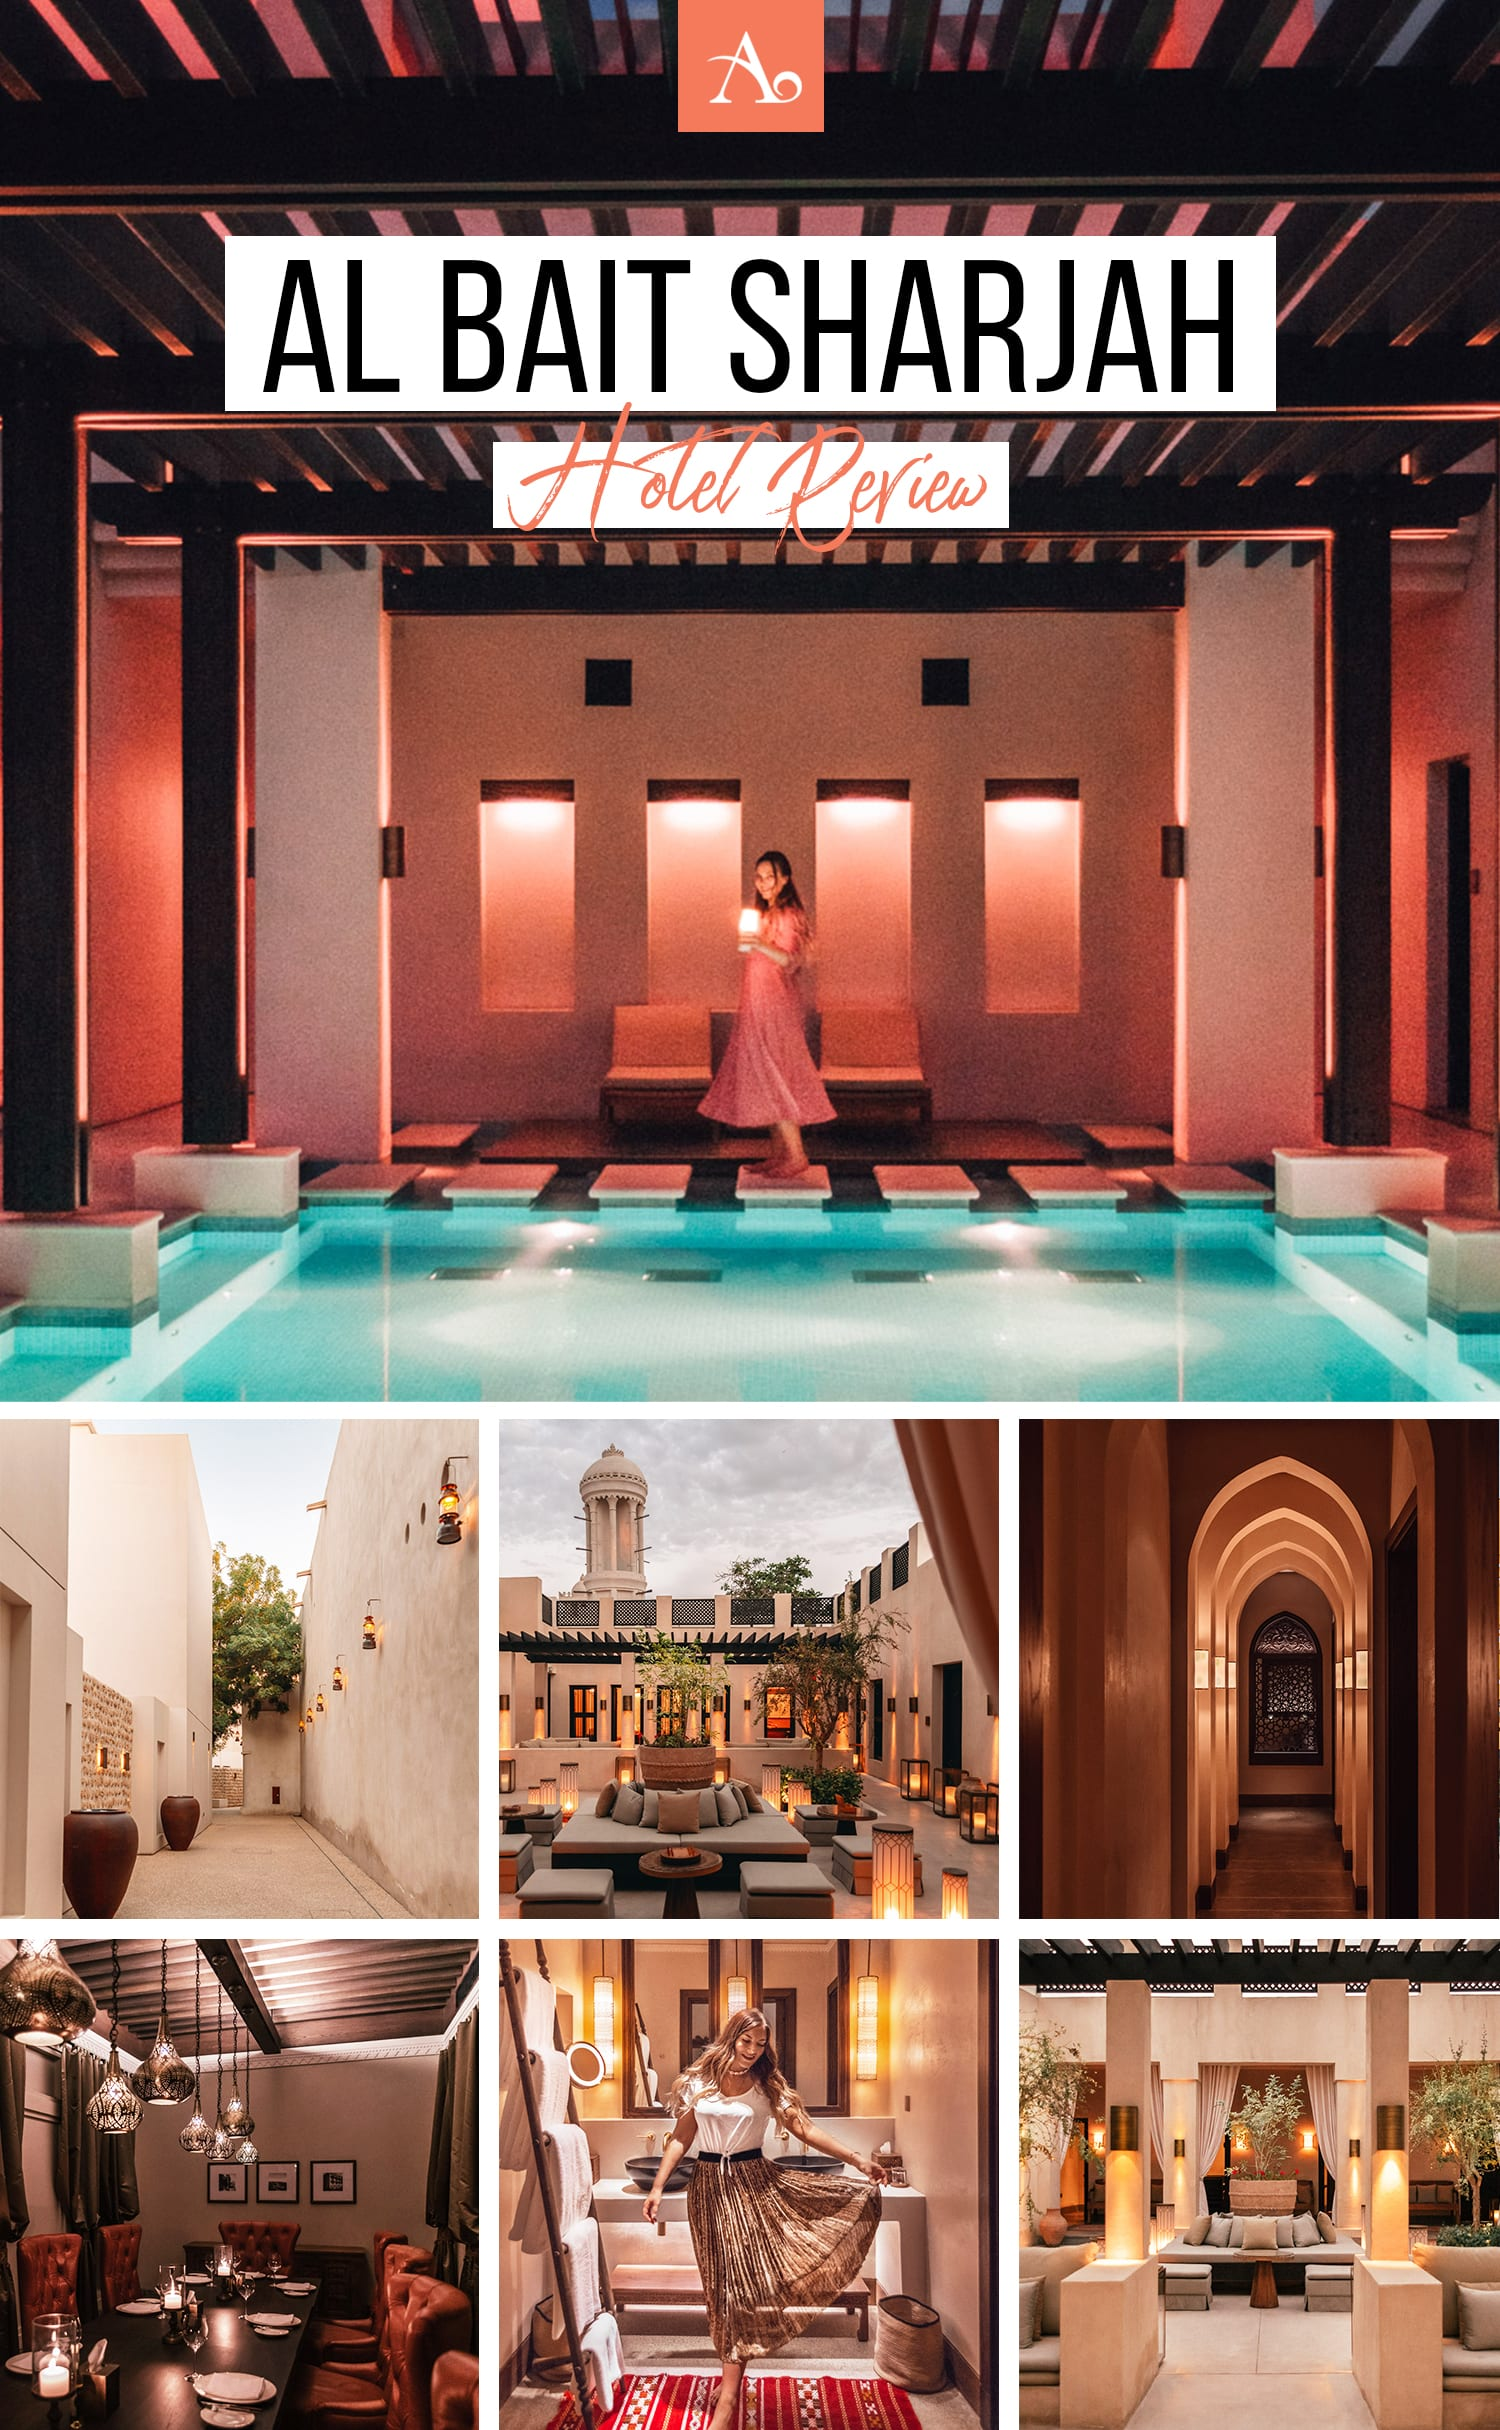 Al Bait Sharjah Hotel Review | Five-Star Boutique Resort in UAE